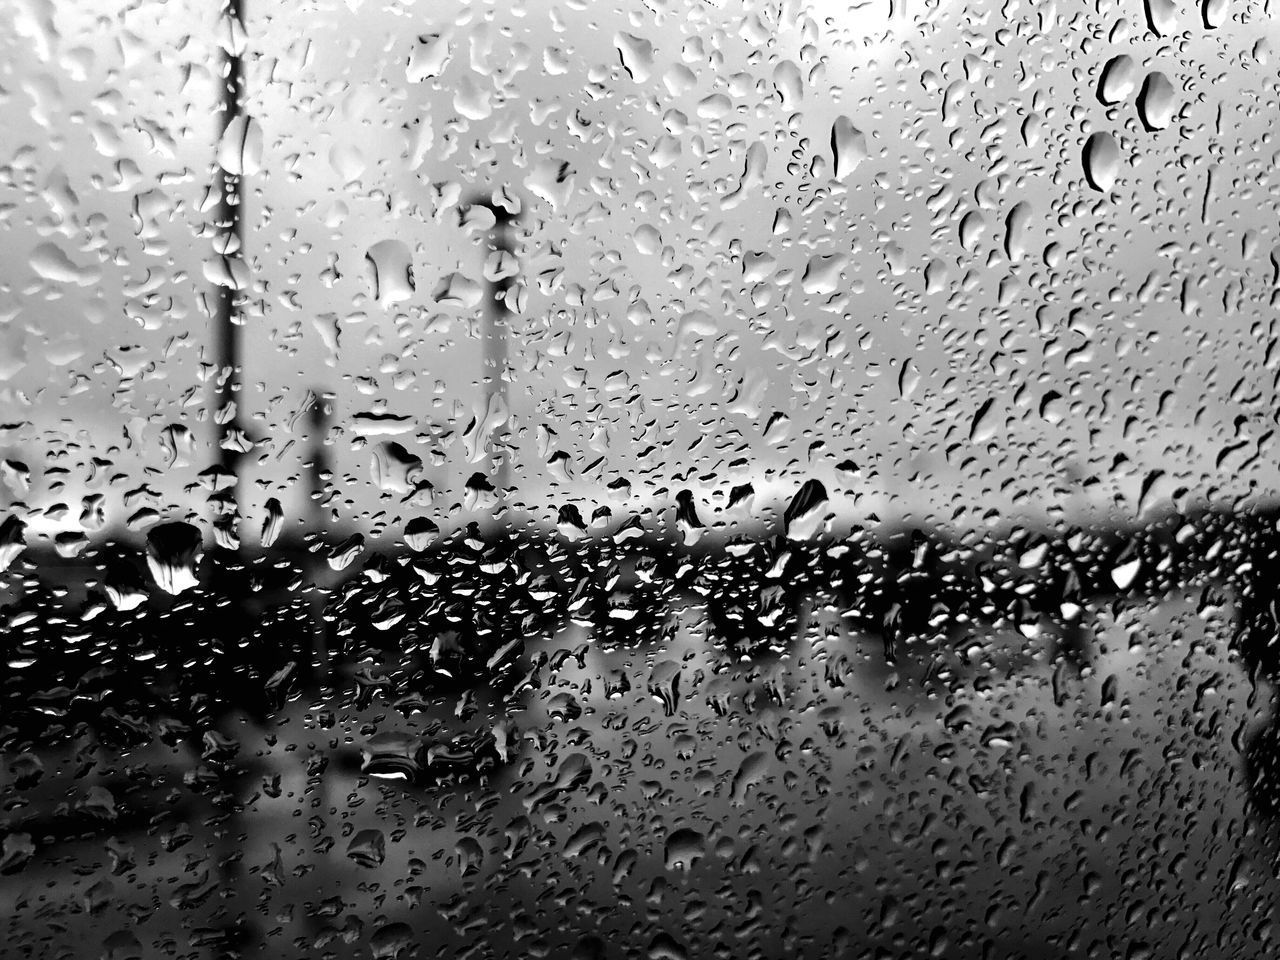 drop, water, rain, wet, transparent, glass - material, window, full frame, raindrop, weather, indoors, rainy season, backgrounds, no people, car, close-up, condensation, land vehicle, car interior, day, nature, freshness, sky